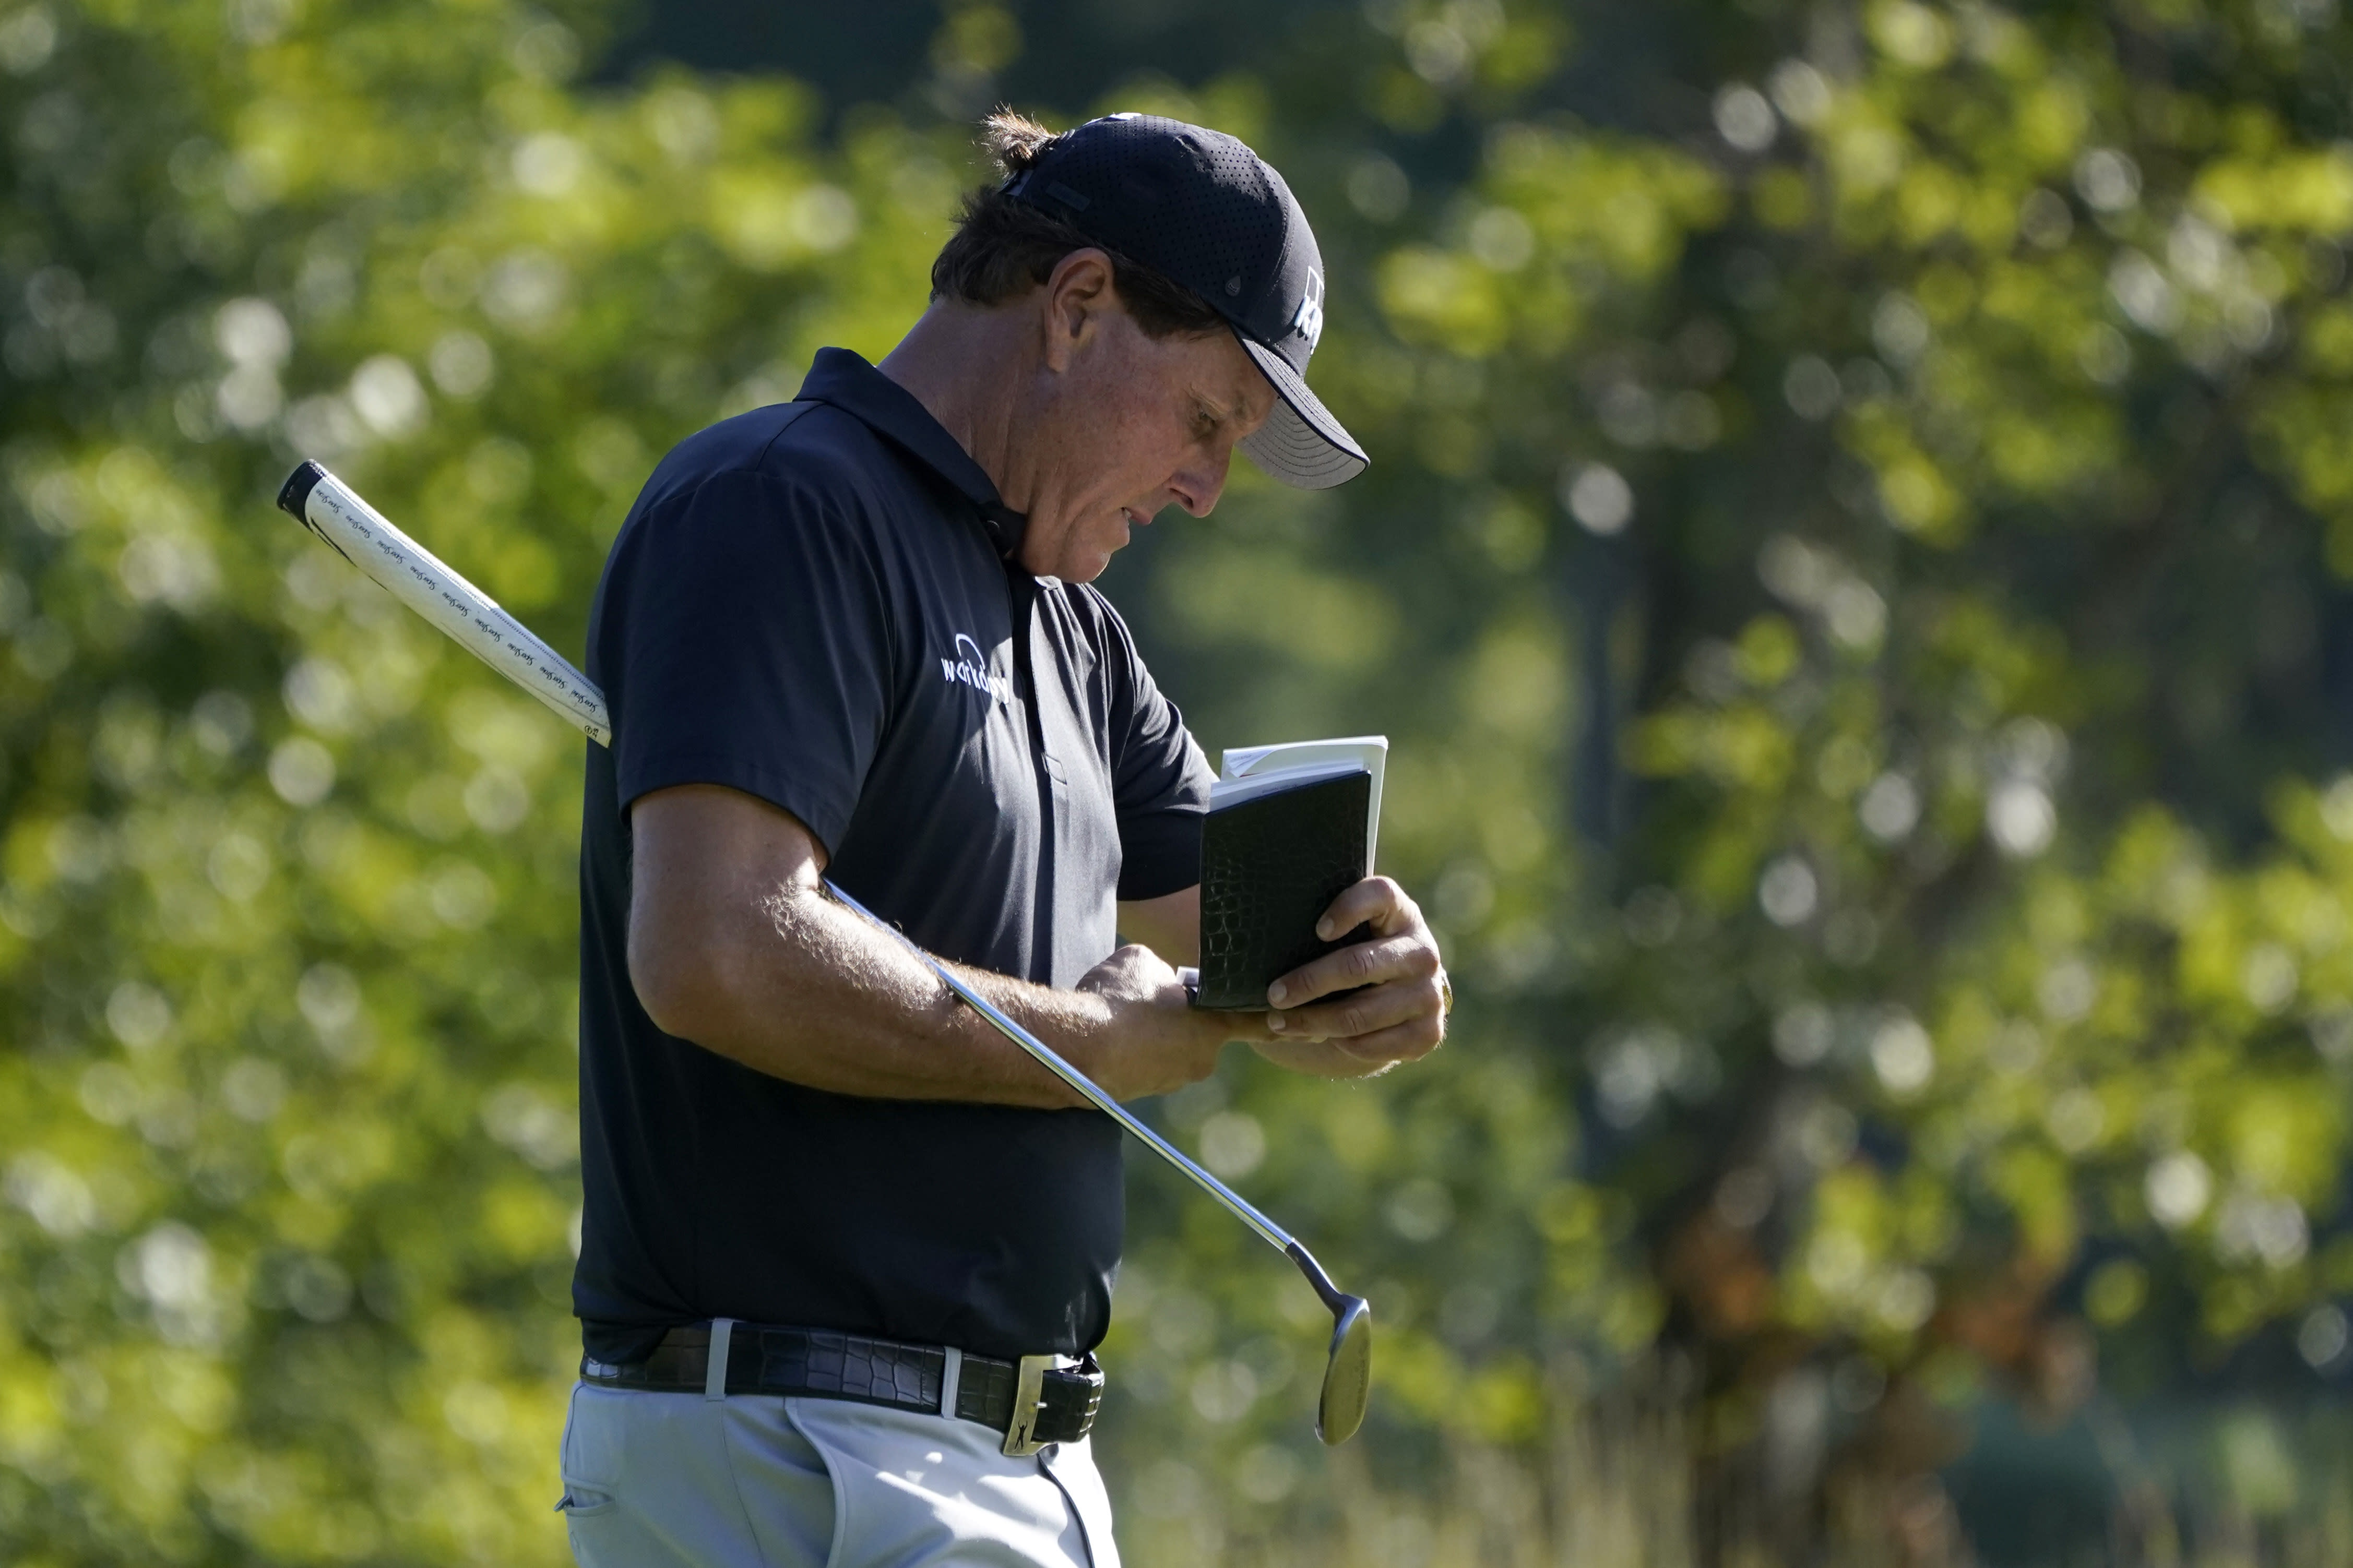 Phil Mickelson refers to his notes as he walks up onto the 14th green during the second round of the Northern Trust golf tournament at TPC Boston, Friday, Aug. 21, 2020, in Norton, Mass. (AP Photo/Charles Krupa)